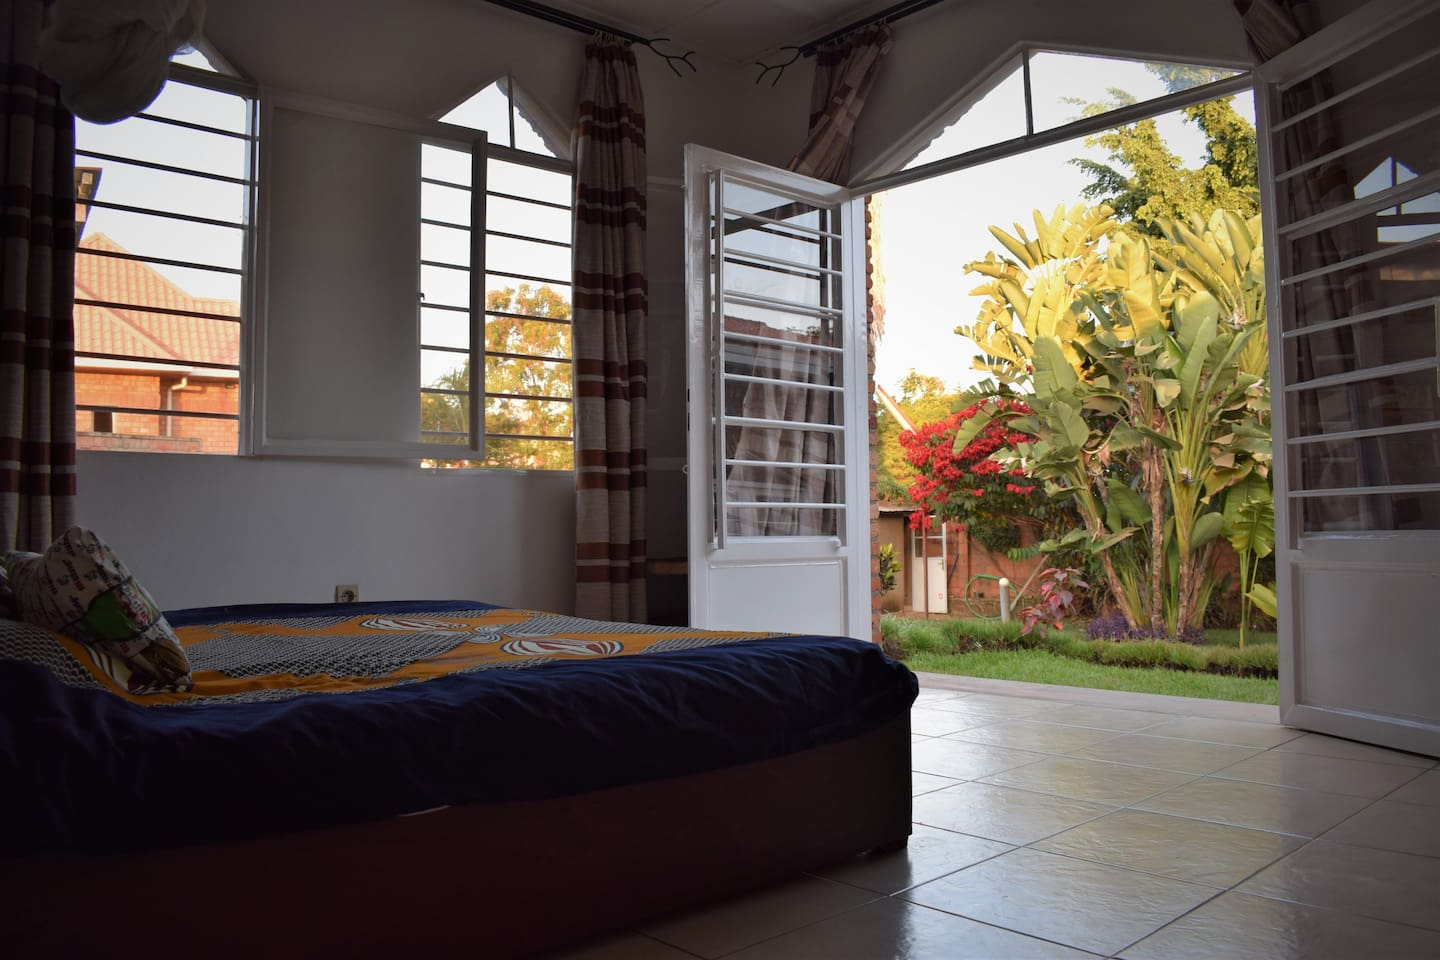 Stunning view from your bed of our tranquil garden